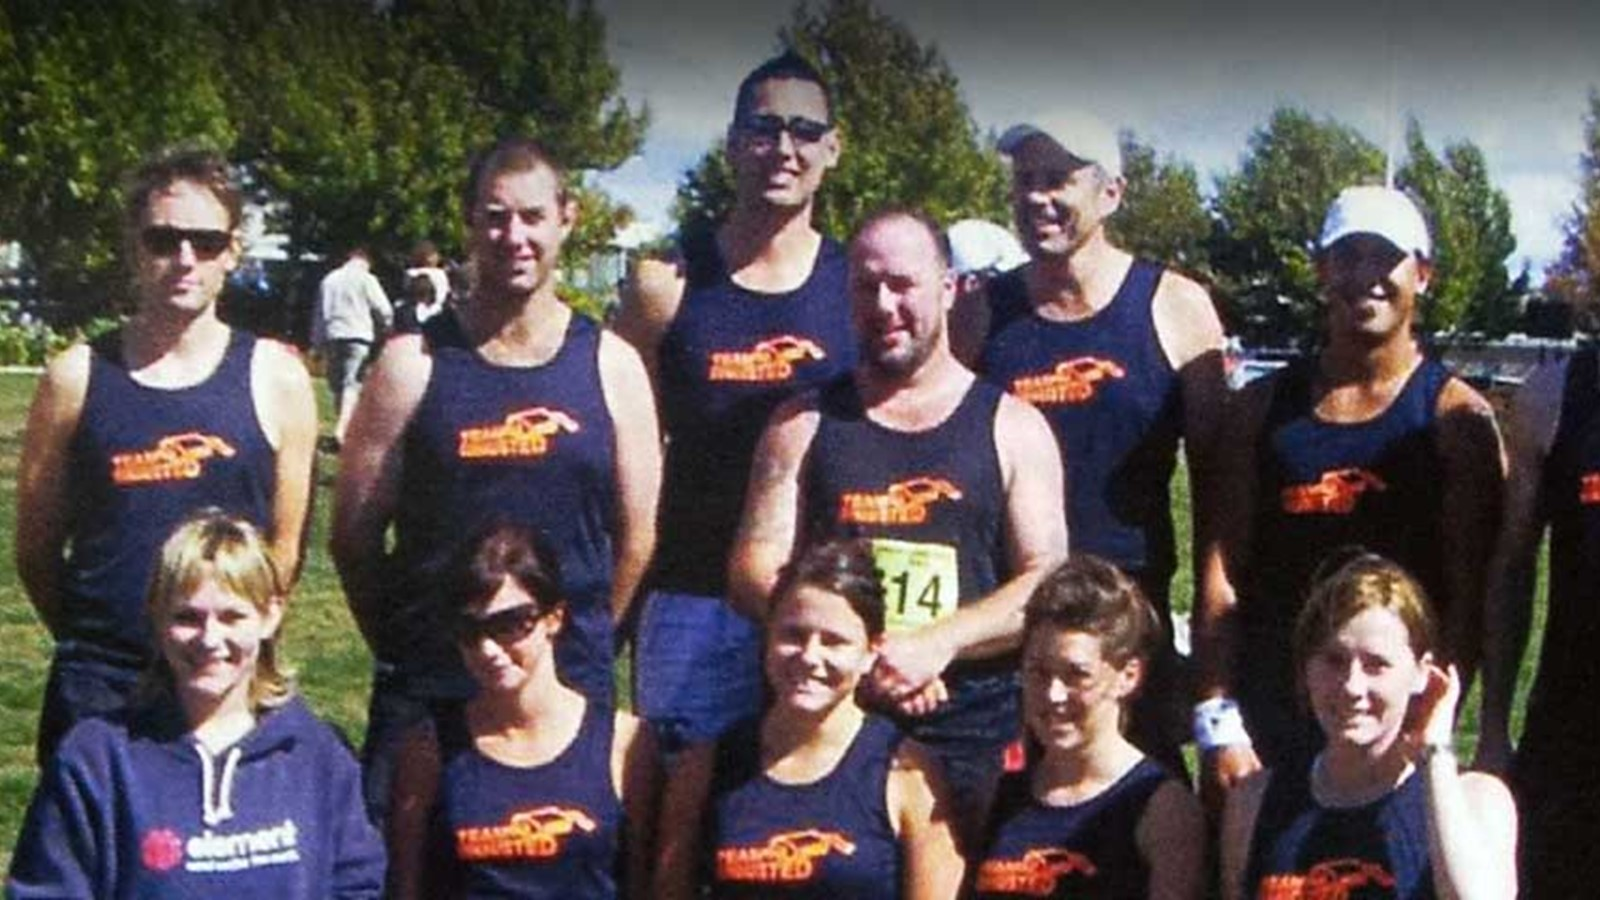 Truckstops New Zealand team members at an event in 2005